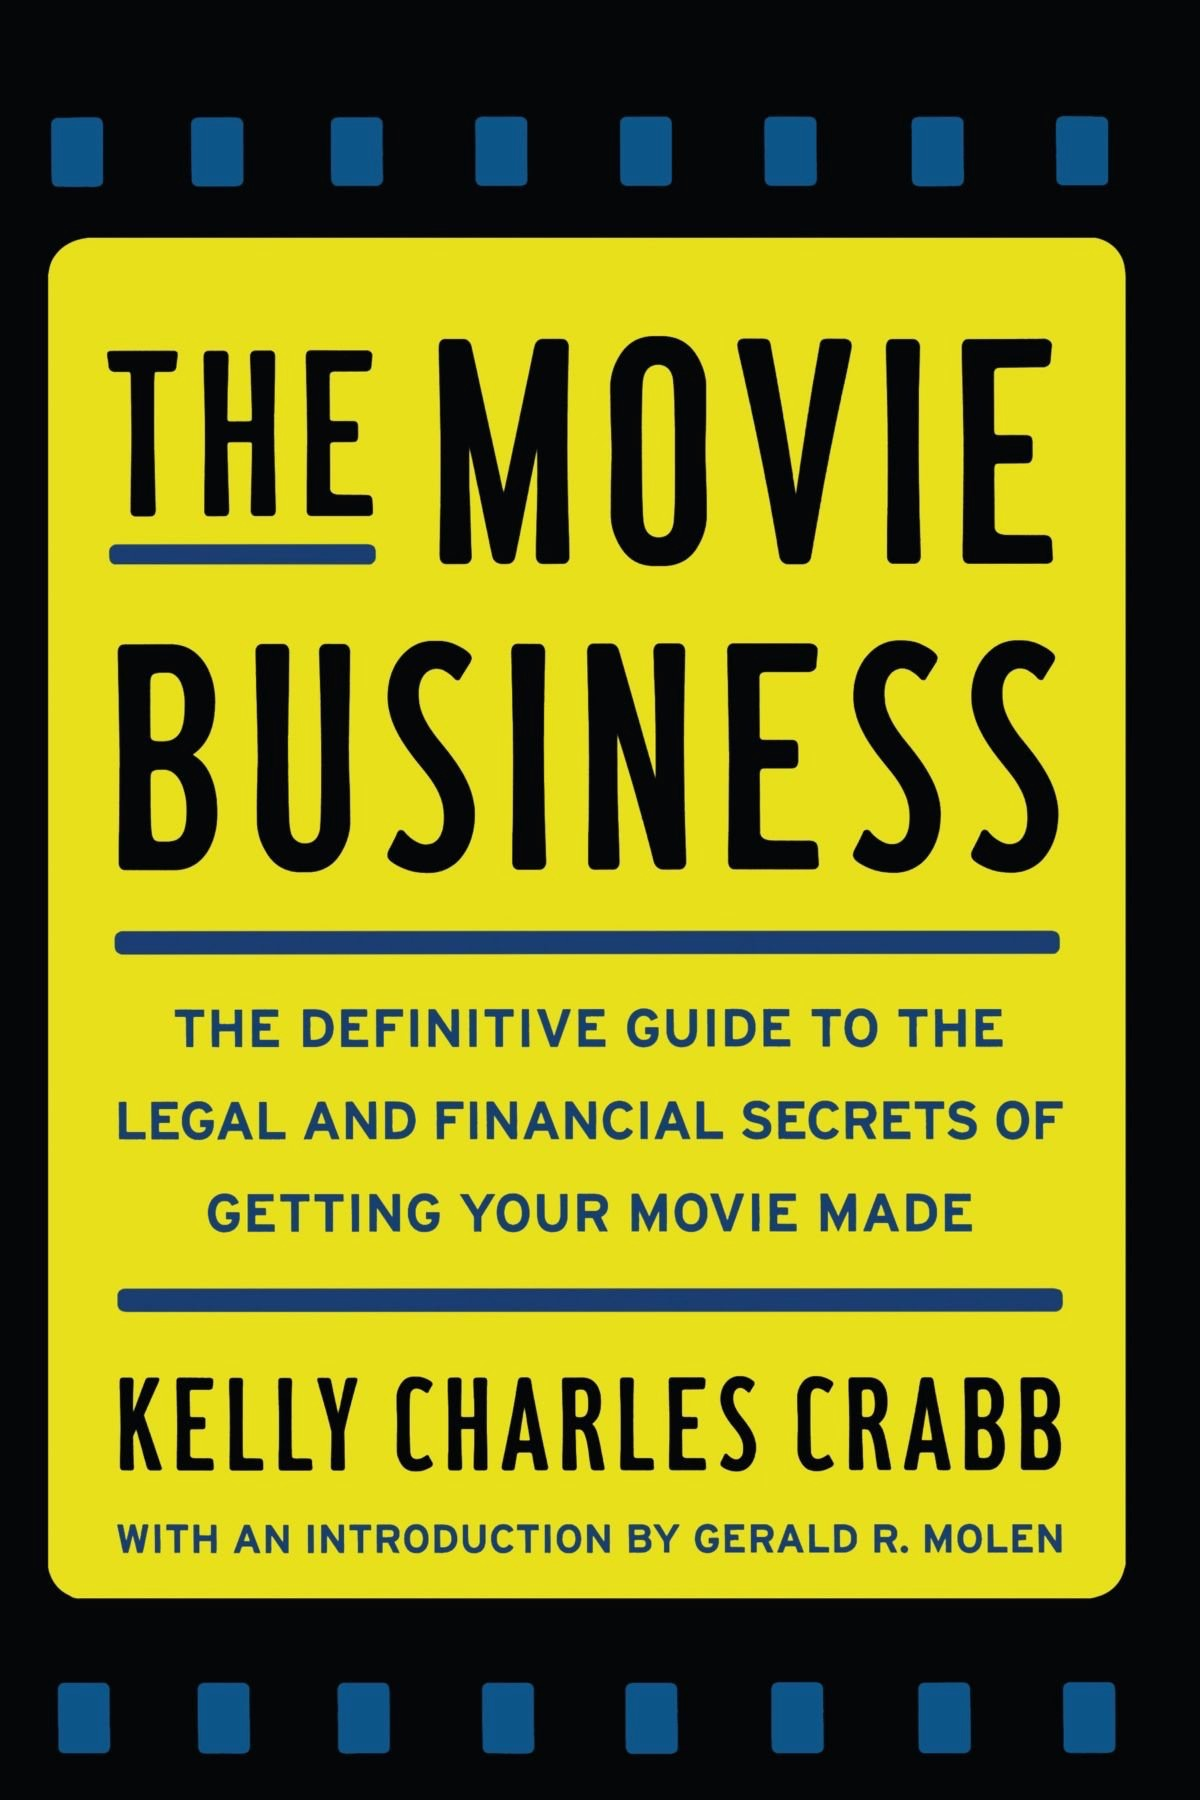 The Movie Business - by Kelly Charles Crabbe